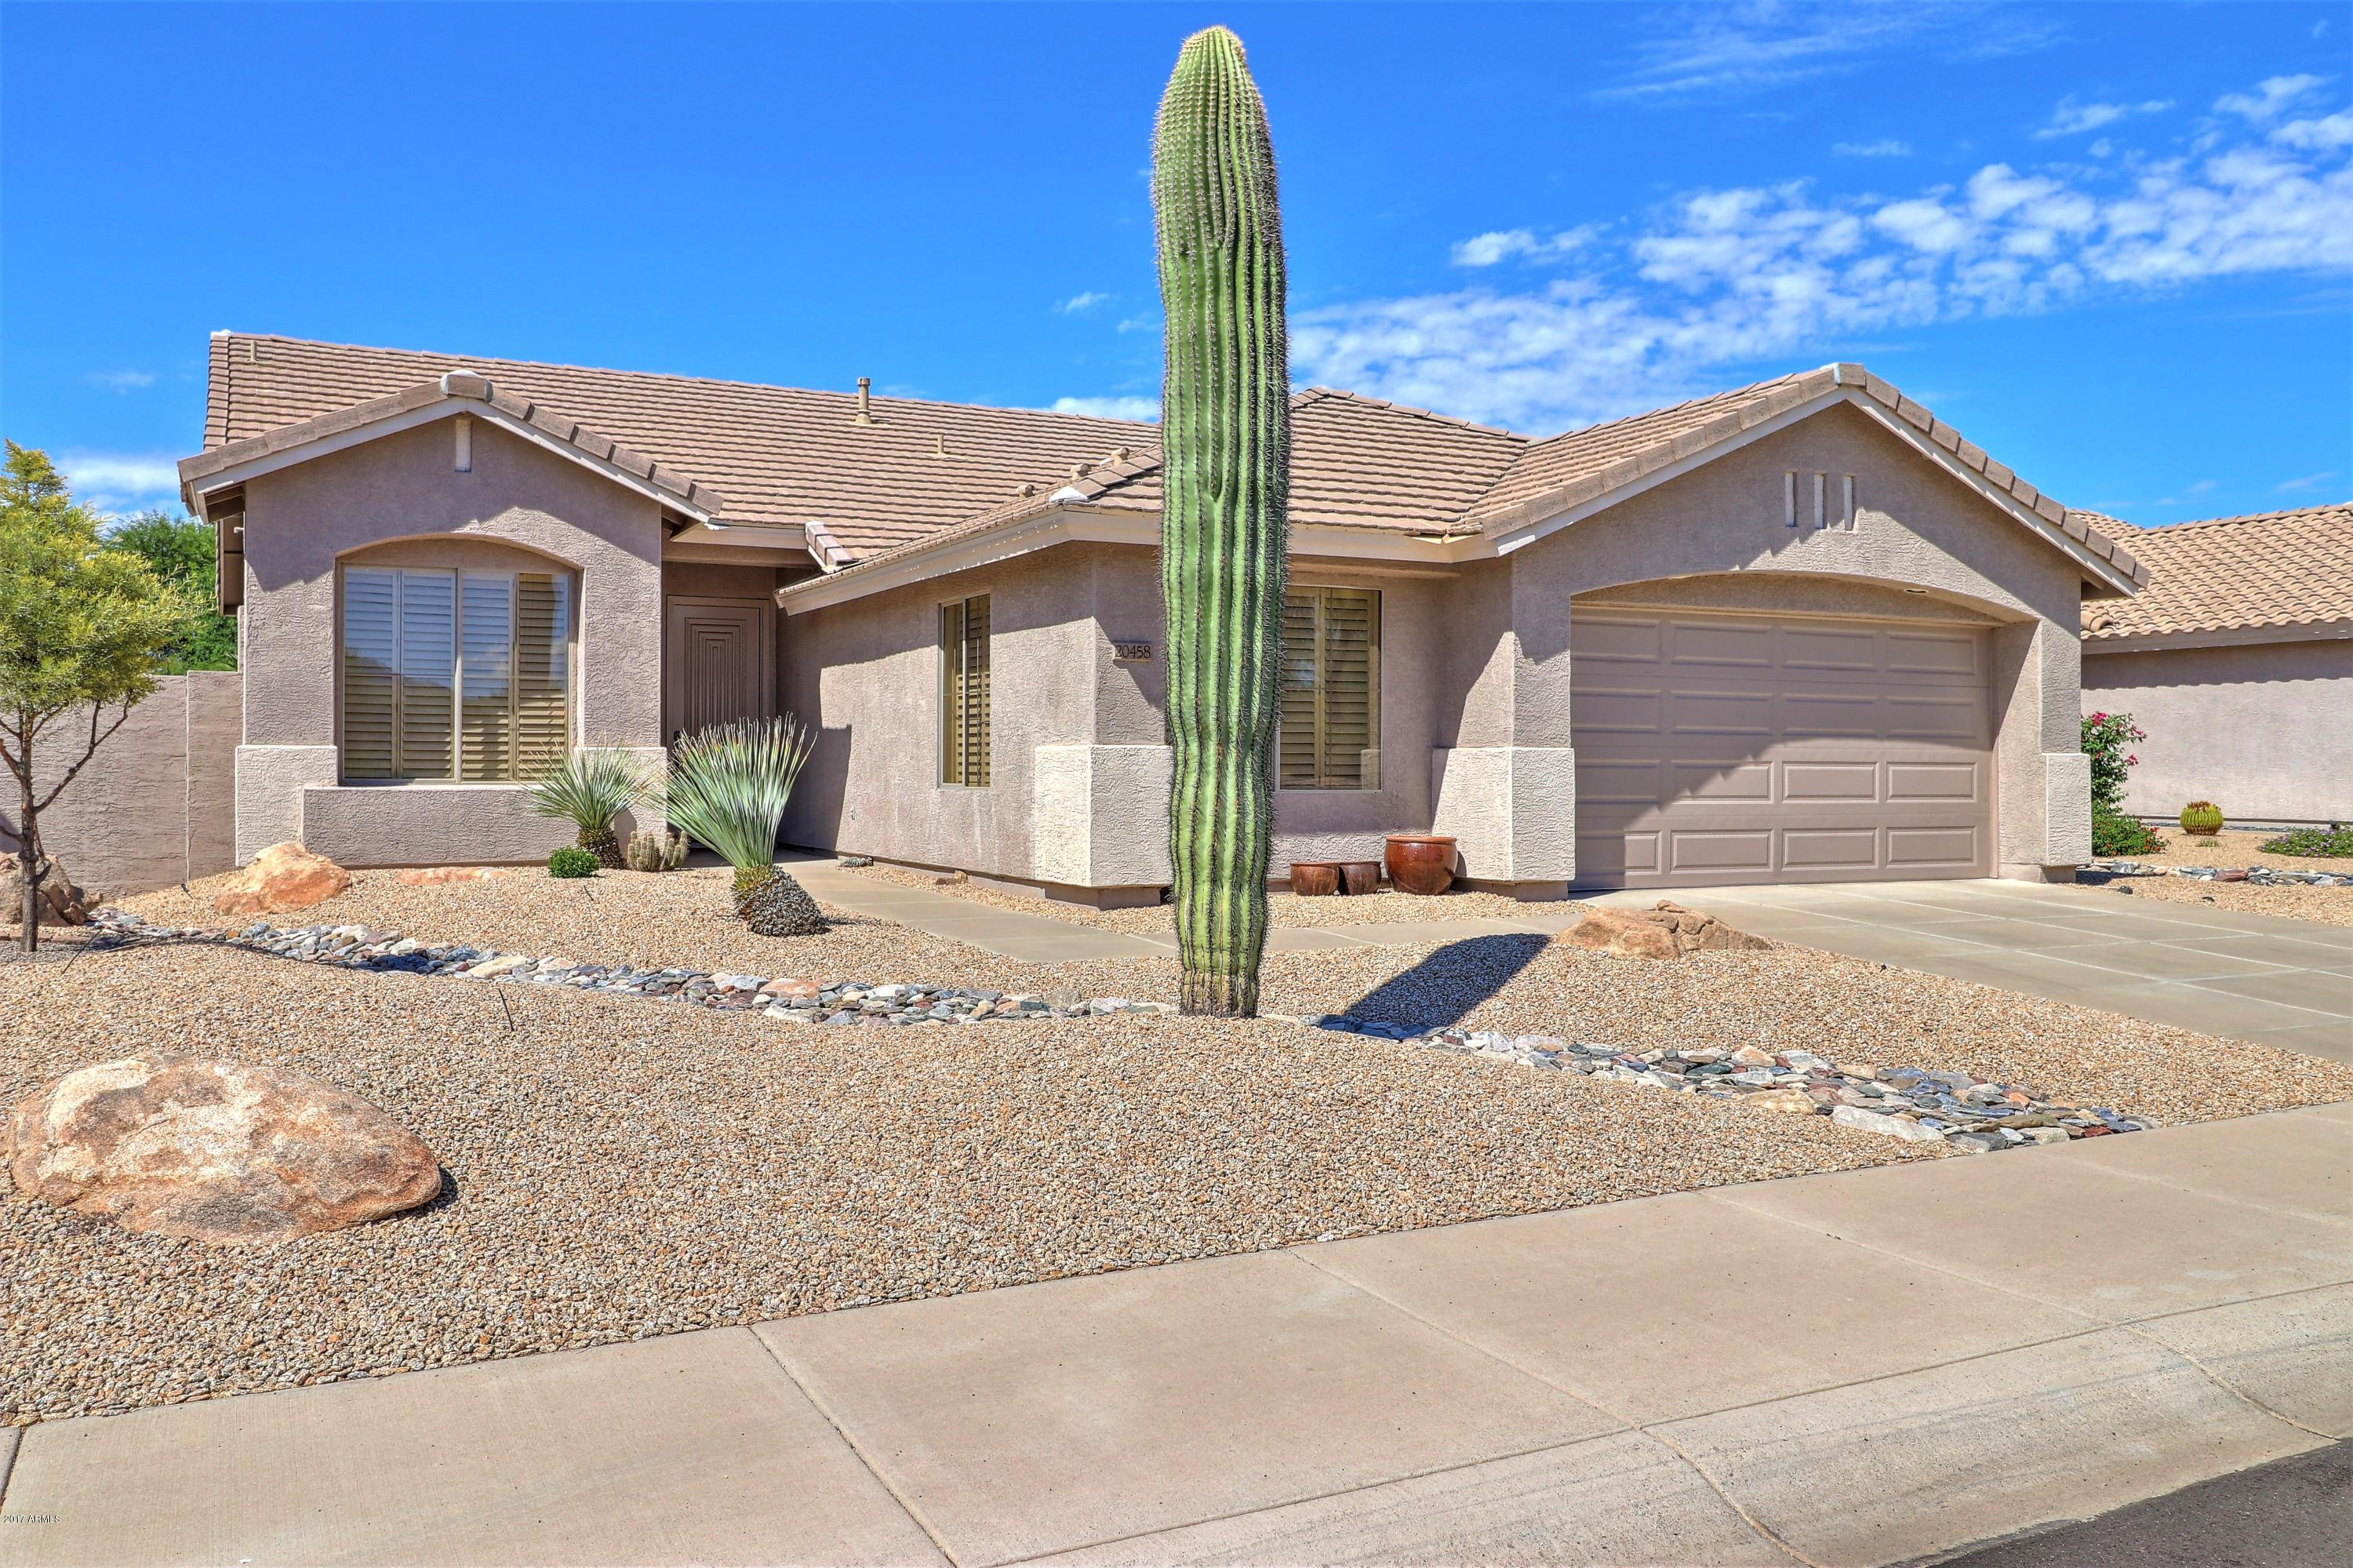 20458 N 78th Way, Scottsdale AZ 85255 - Photo 1